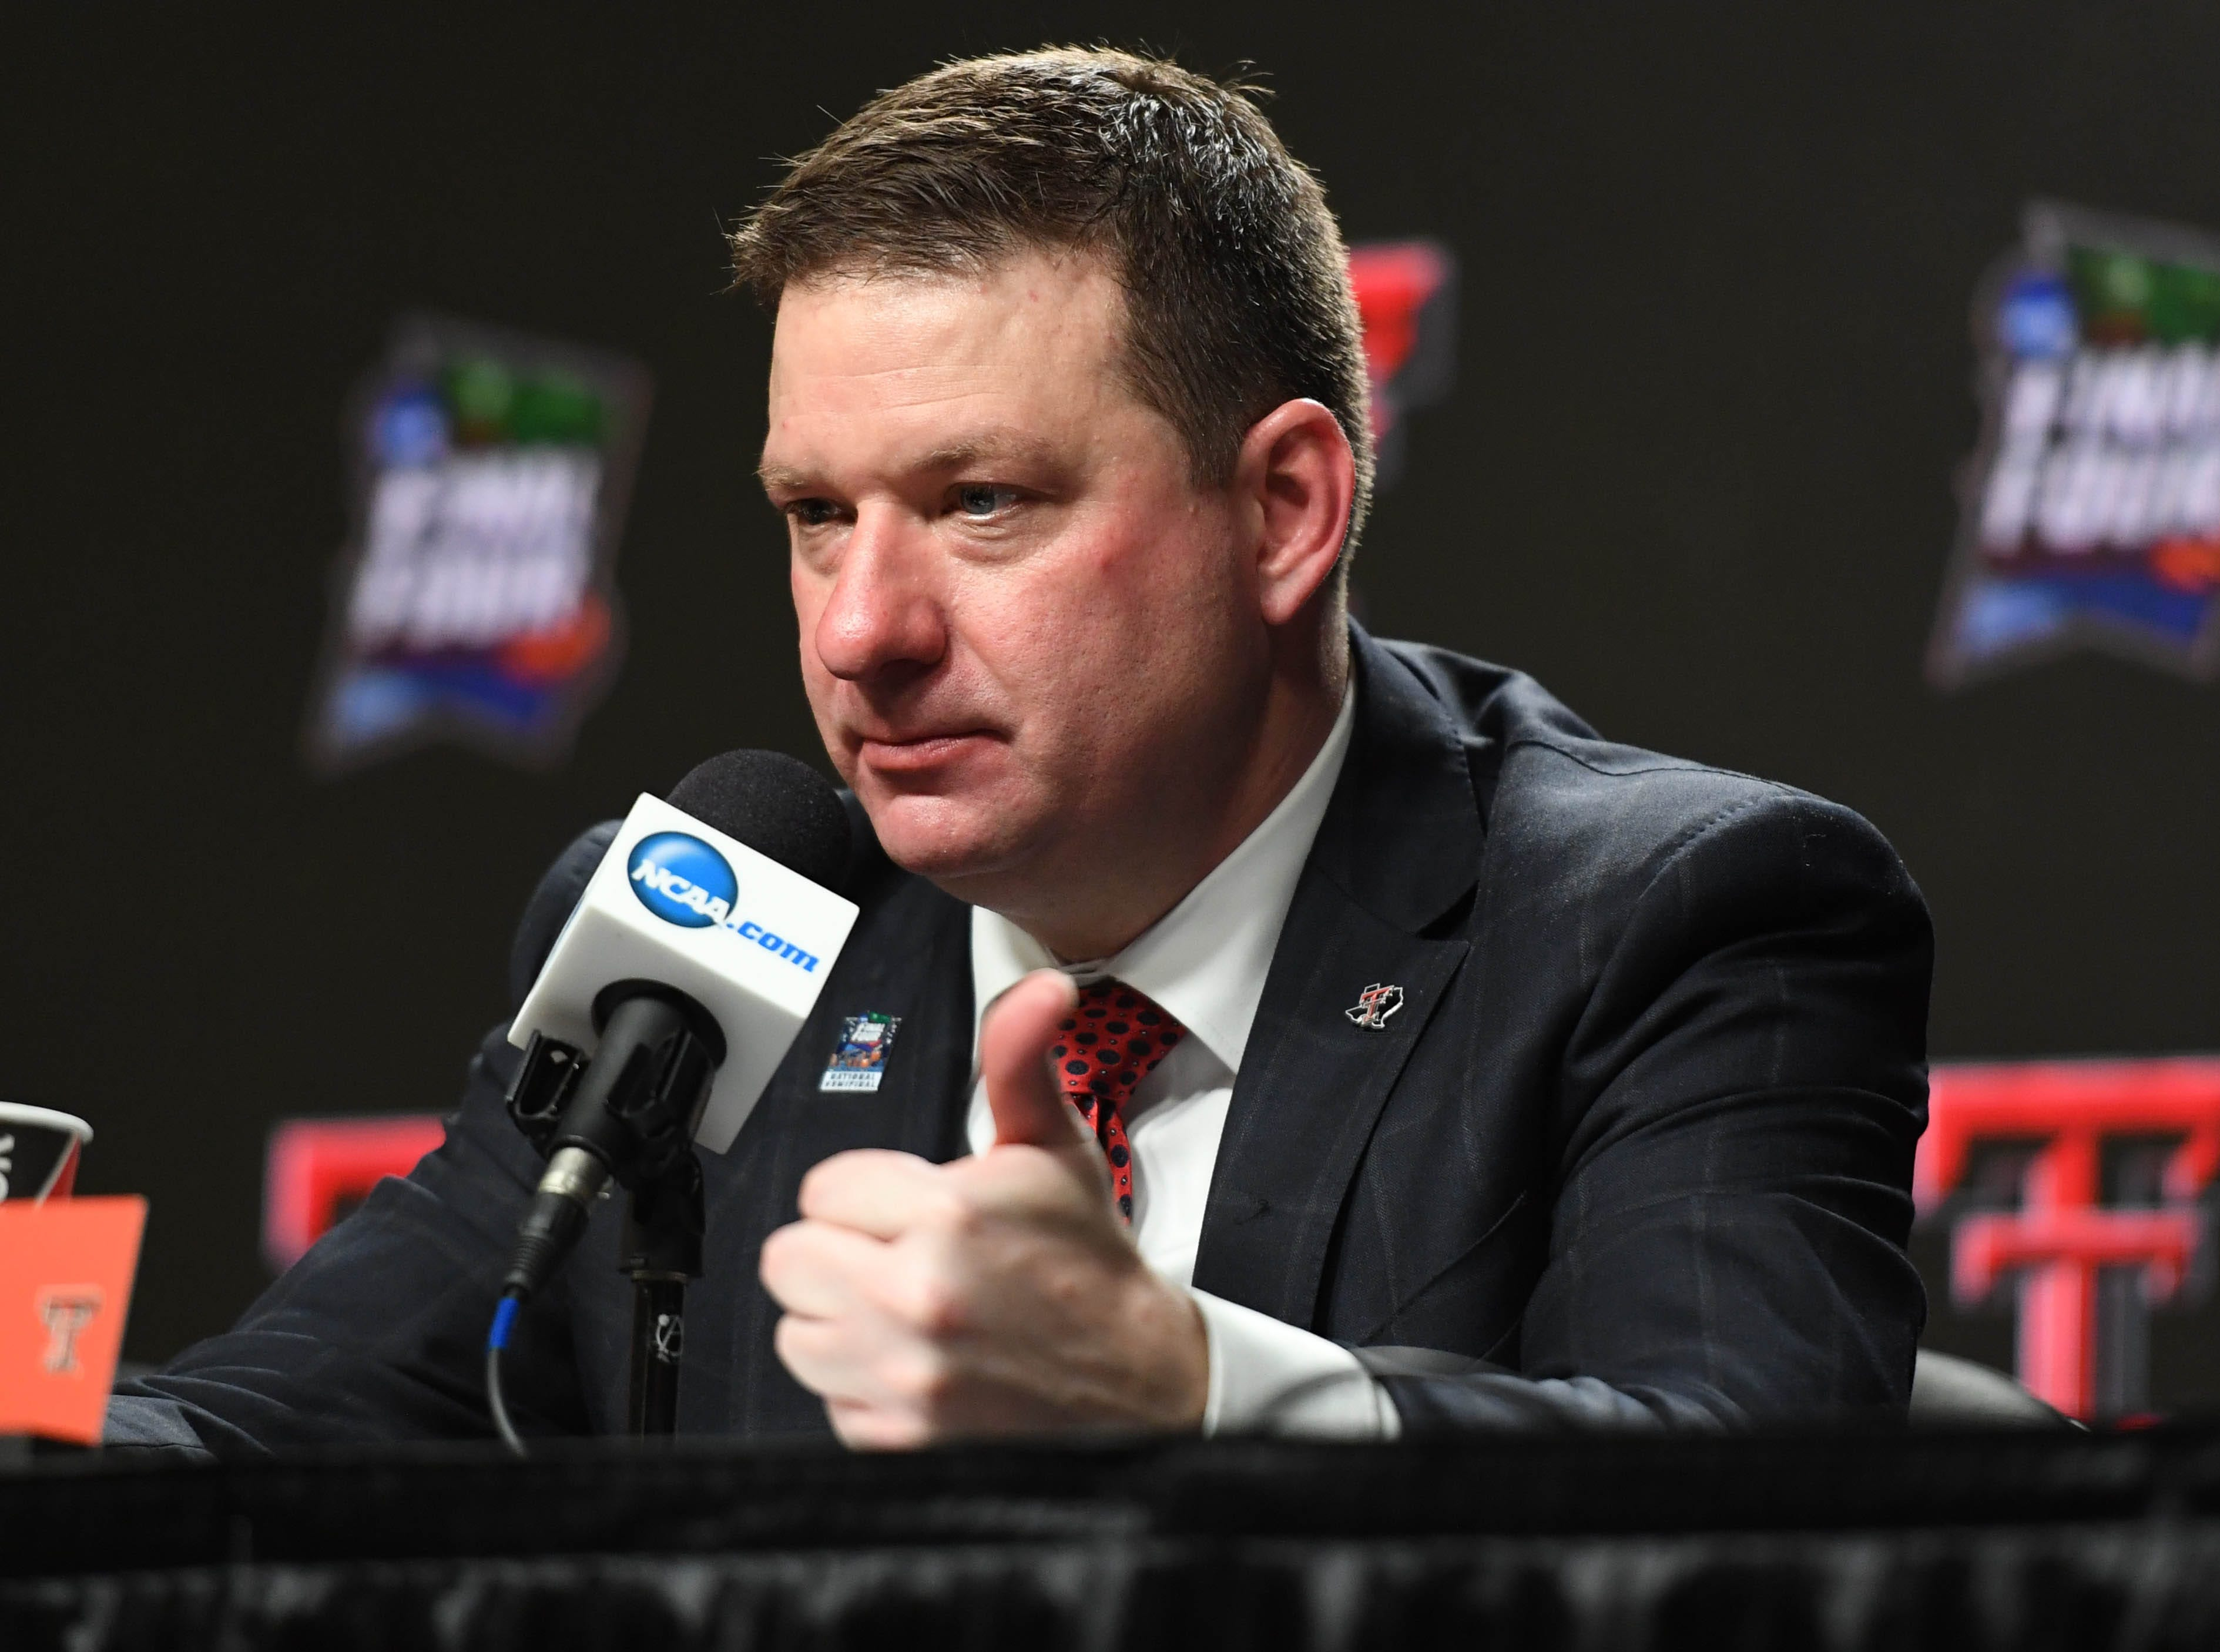 Apr 6, 2019; Minneapolis, MN, USA; Texas Tech Red Raiders head coach Chris Beard at a press conference after the semifinals of the 2019 men's Final Four against the Michigan State Spartans at US Bank Stadium. Mandatory Credit: Shanna Lockwood-USA TODAY Sports